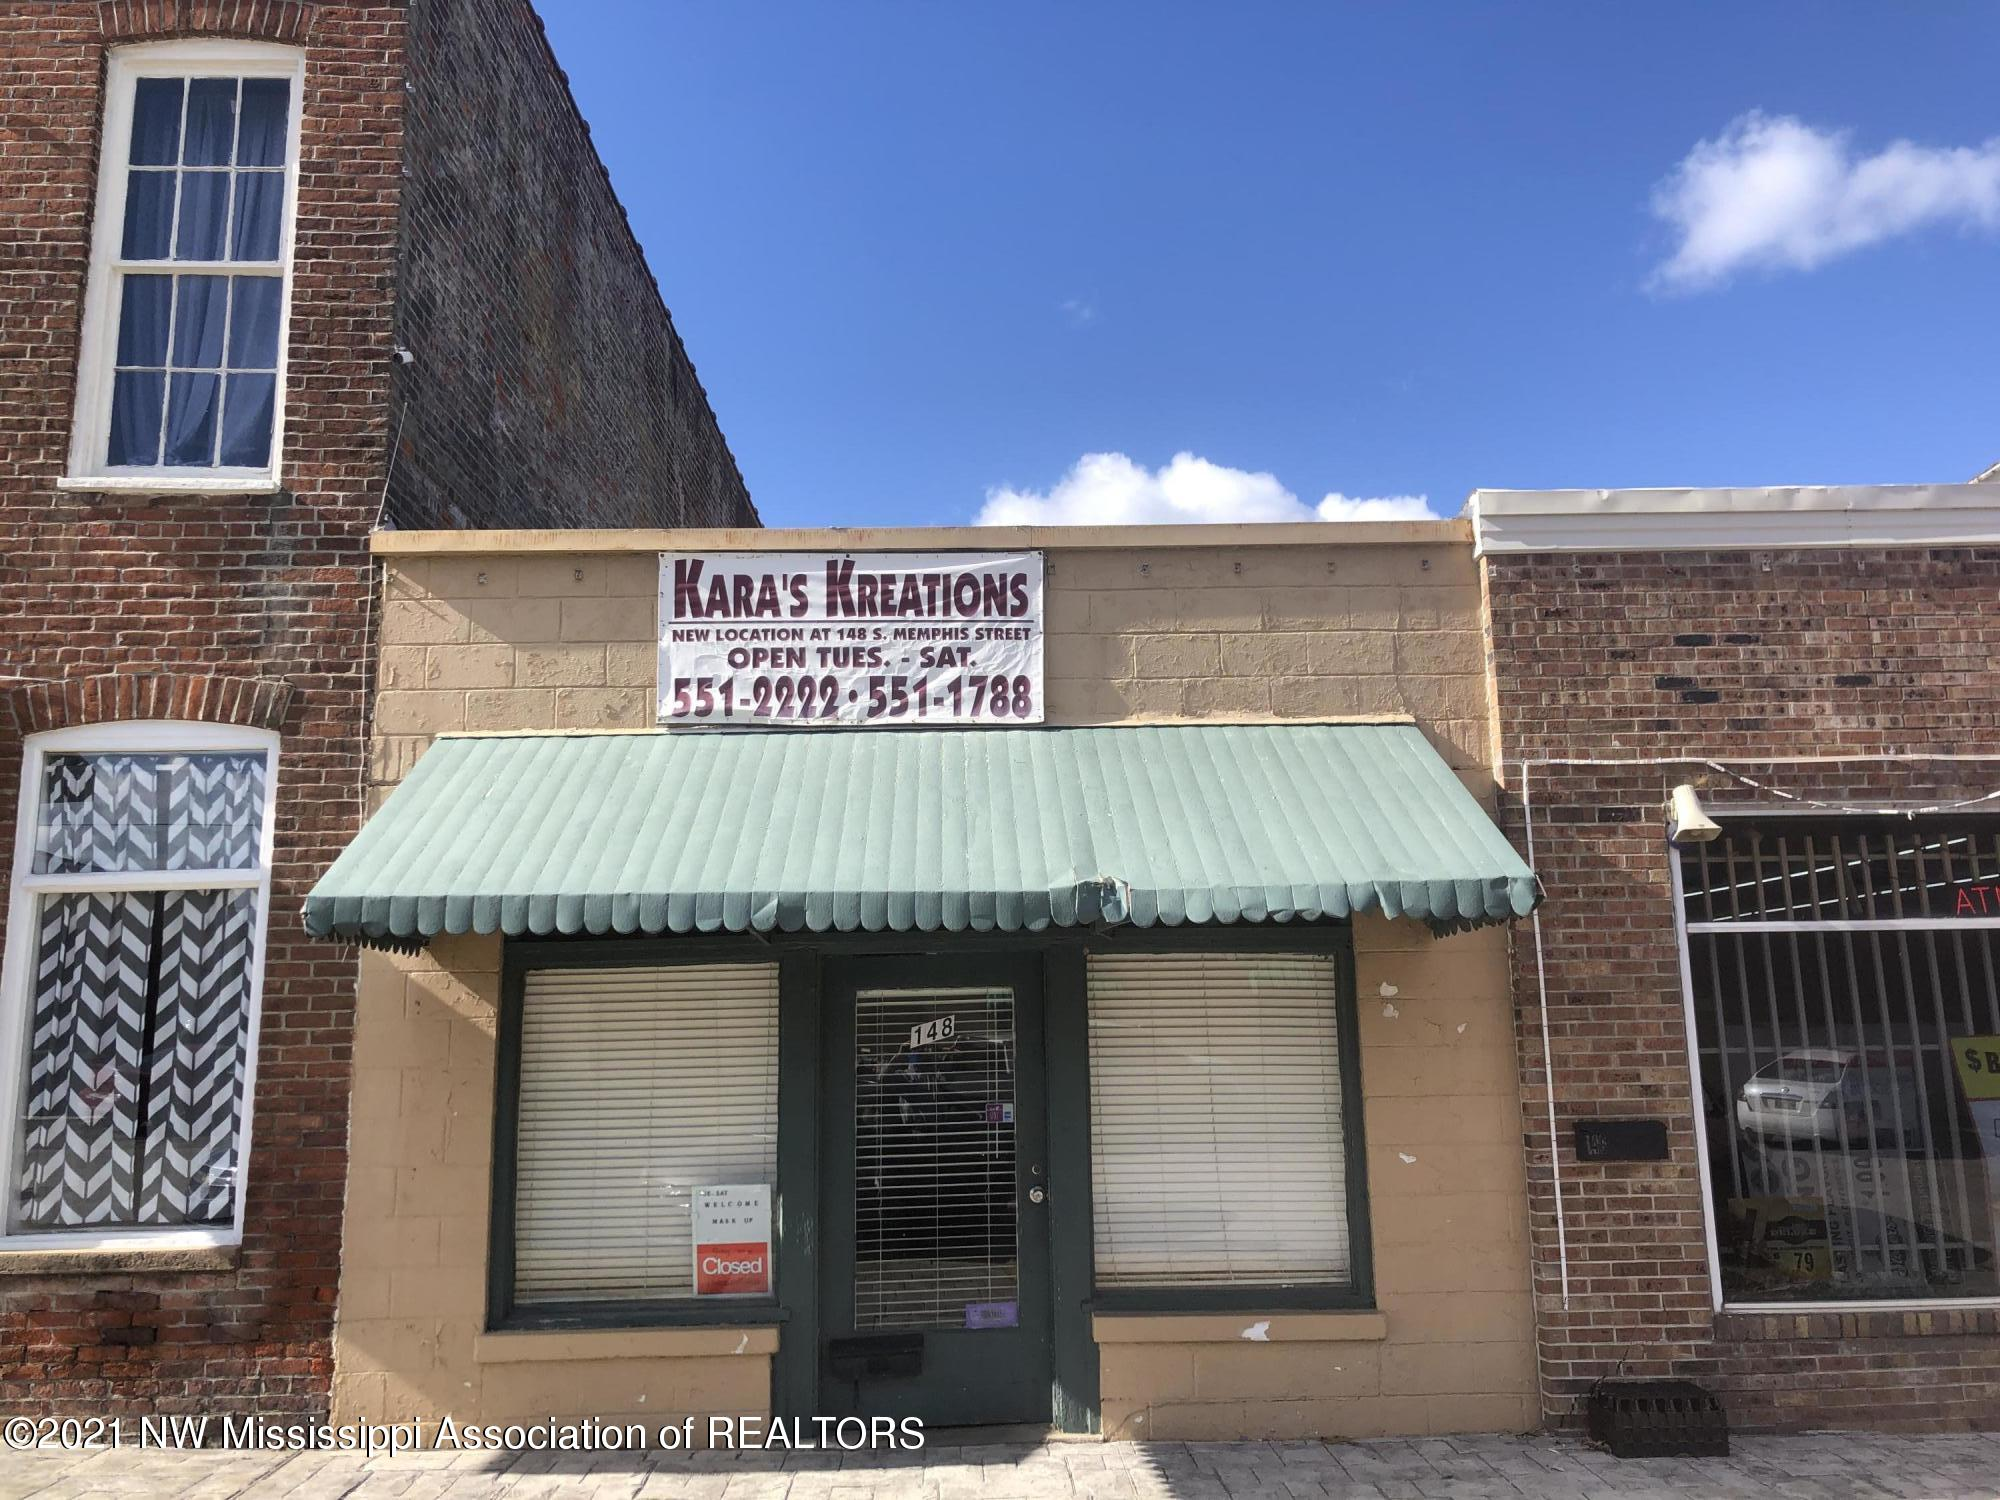 145 Memphis Street, Marshall, Mississippi 38635, ,Commercial,For Sale,Memphis,333446